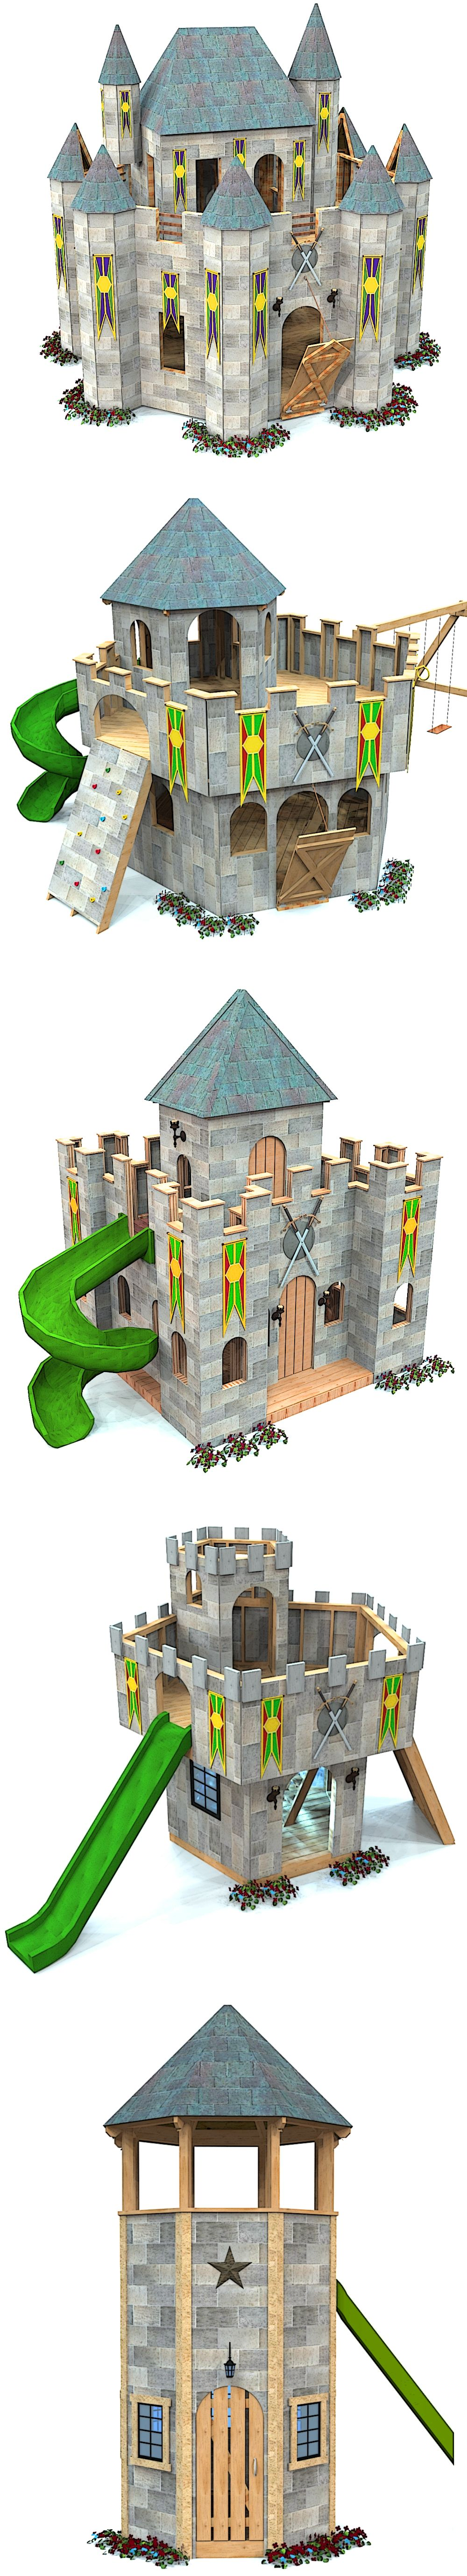 5 castle playhouse plans for download. Purchase one today and start on castle playhouse ideas, castle playhouse with slide, castle bedroom designs, cardboard castle designs, castle playhouse plans, castle patio designs, lego castle designs,